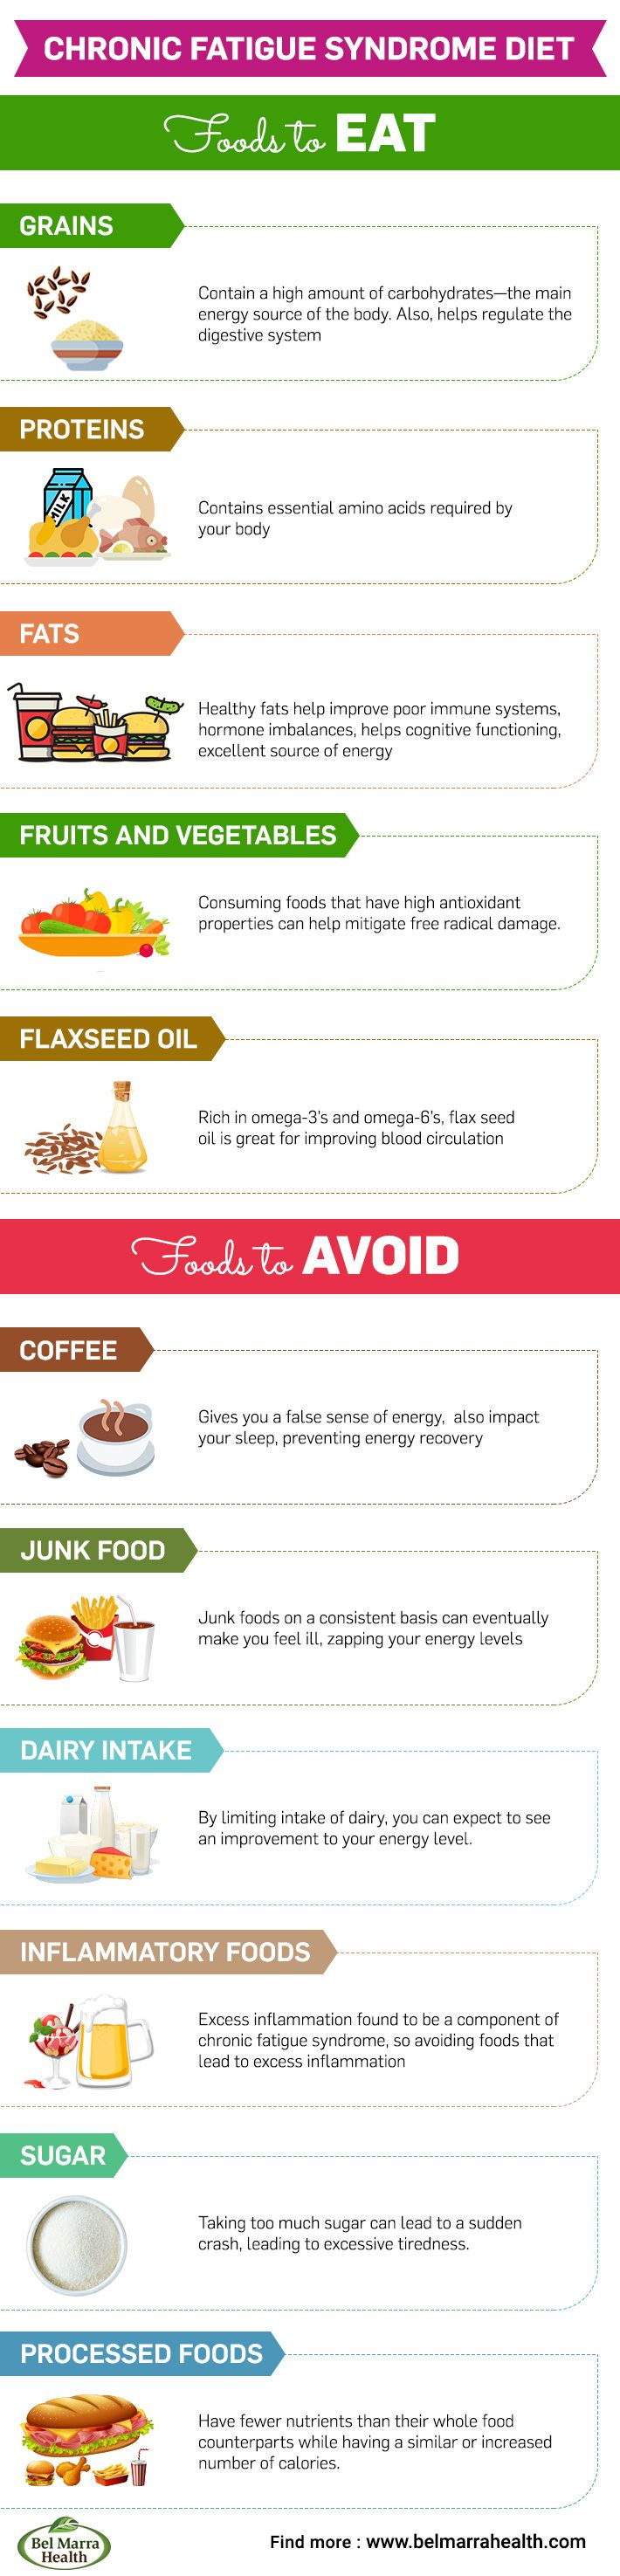 Chronic fatigue syndrome diet: Foods to eat and avoid